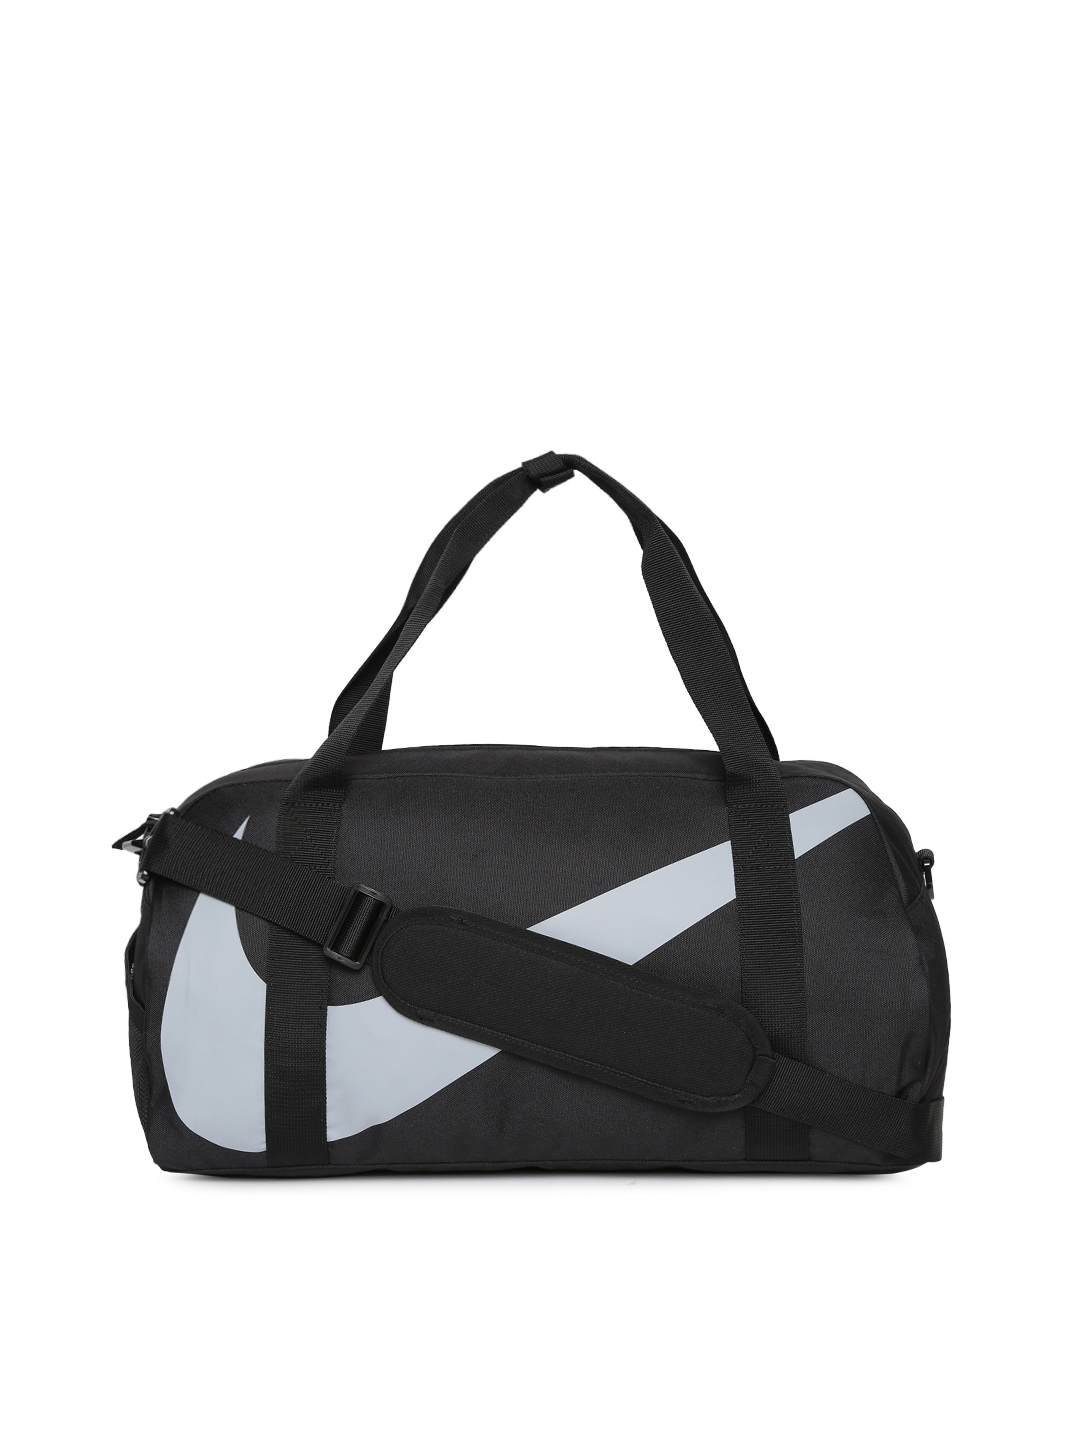 Nike Duffel Bag - Buy Nike Duffel Bag online in India 09099ed6d85fb